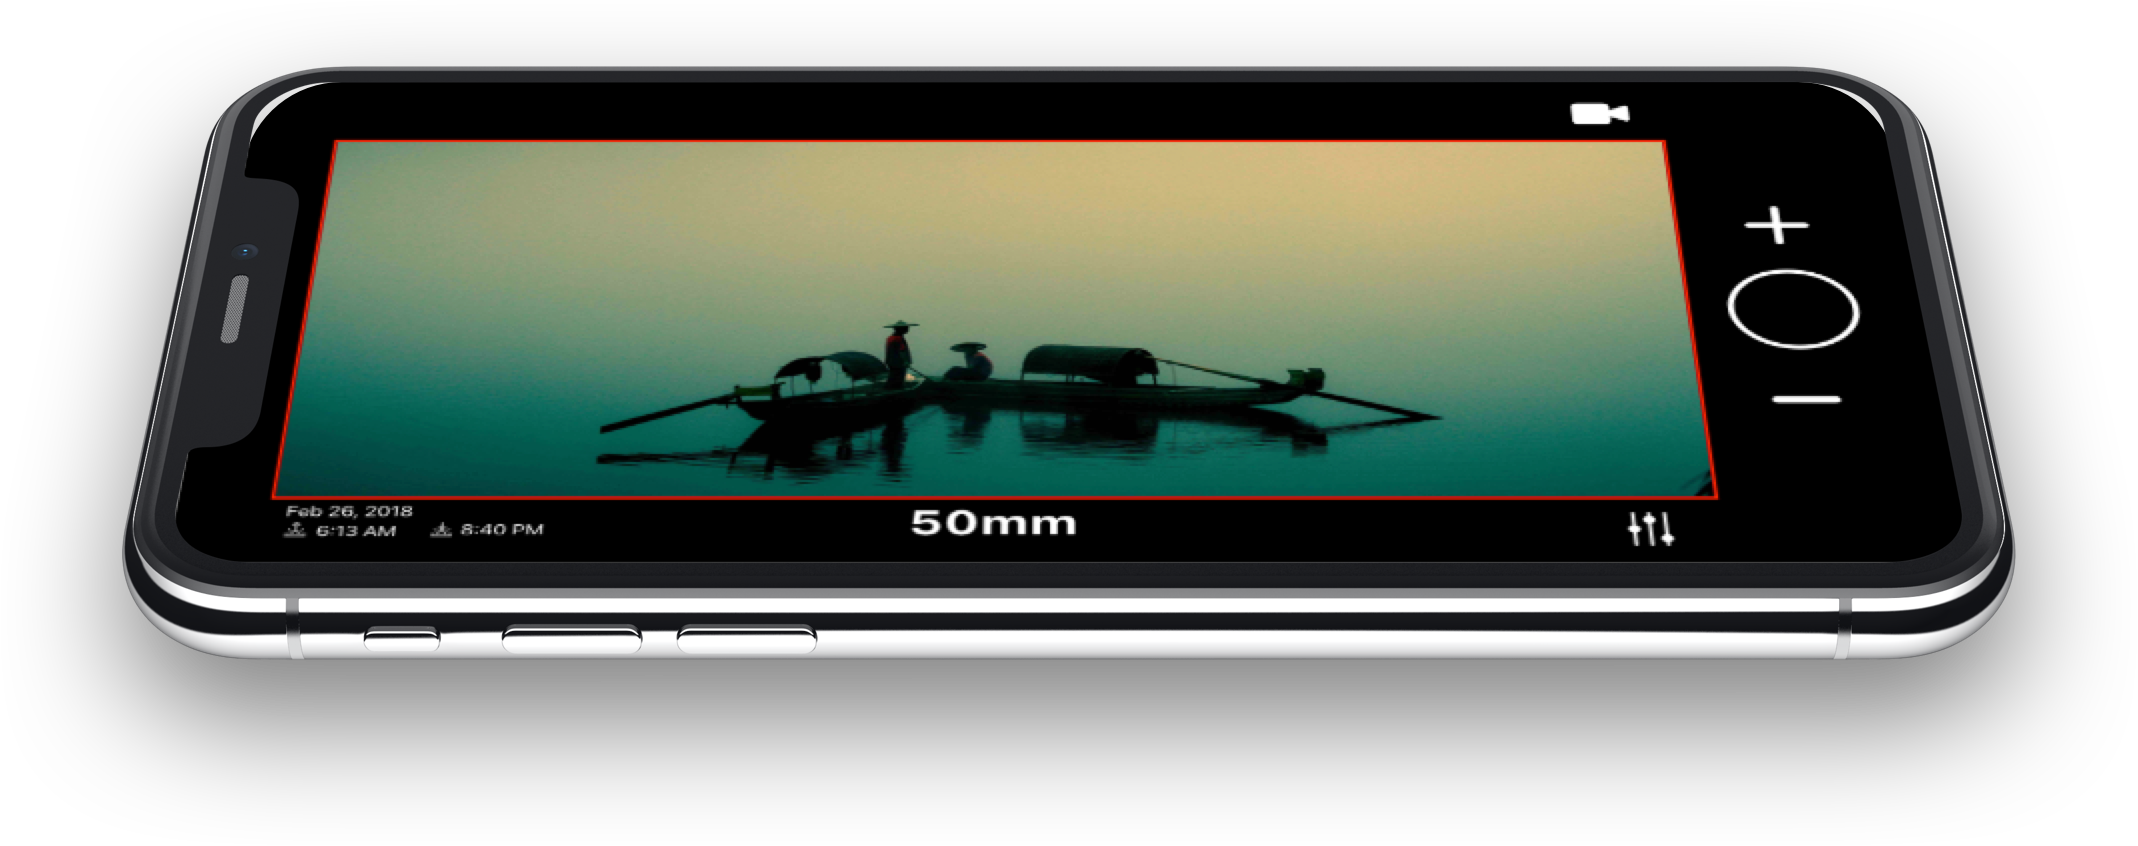 Camera View - iPhone x.png